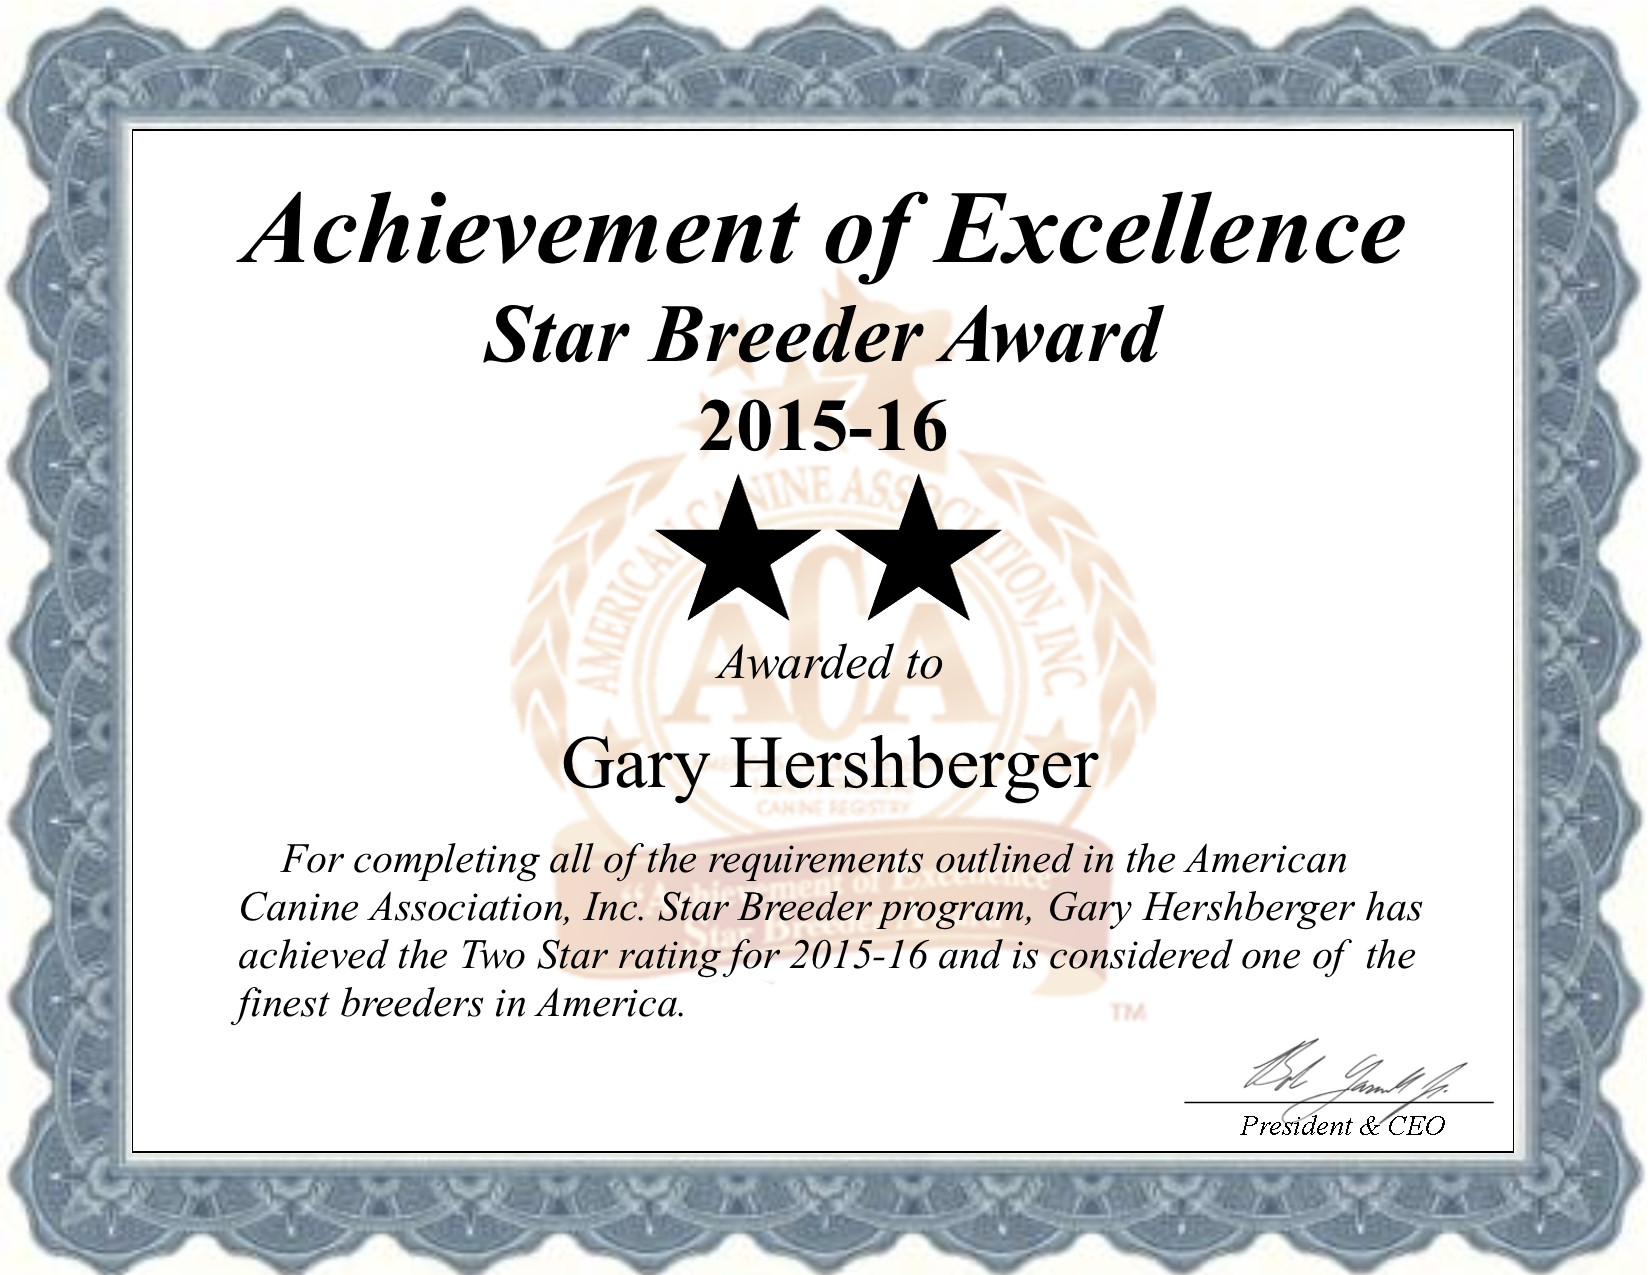 Gary, Herschberger, dog, breeder, il, illinois, Arthur, Gary-Herschberger, dog, breeder, arthur-il, illinois, pup, pups, puppies, usda, license, Inspected, license, number, Herschberger, puppies, litter, agriculture, department, dept, dogs, star, breeder, breeders, USA, loving, American, Canine, Association, Program, Dog, ACA, breeding, litter, application, registration, requirements, records, best, finest, achievement, excellence, health, shows, education, puppymill, breeder, mill, 5